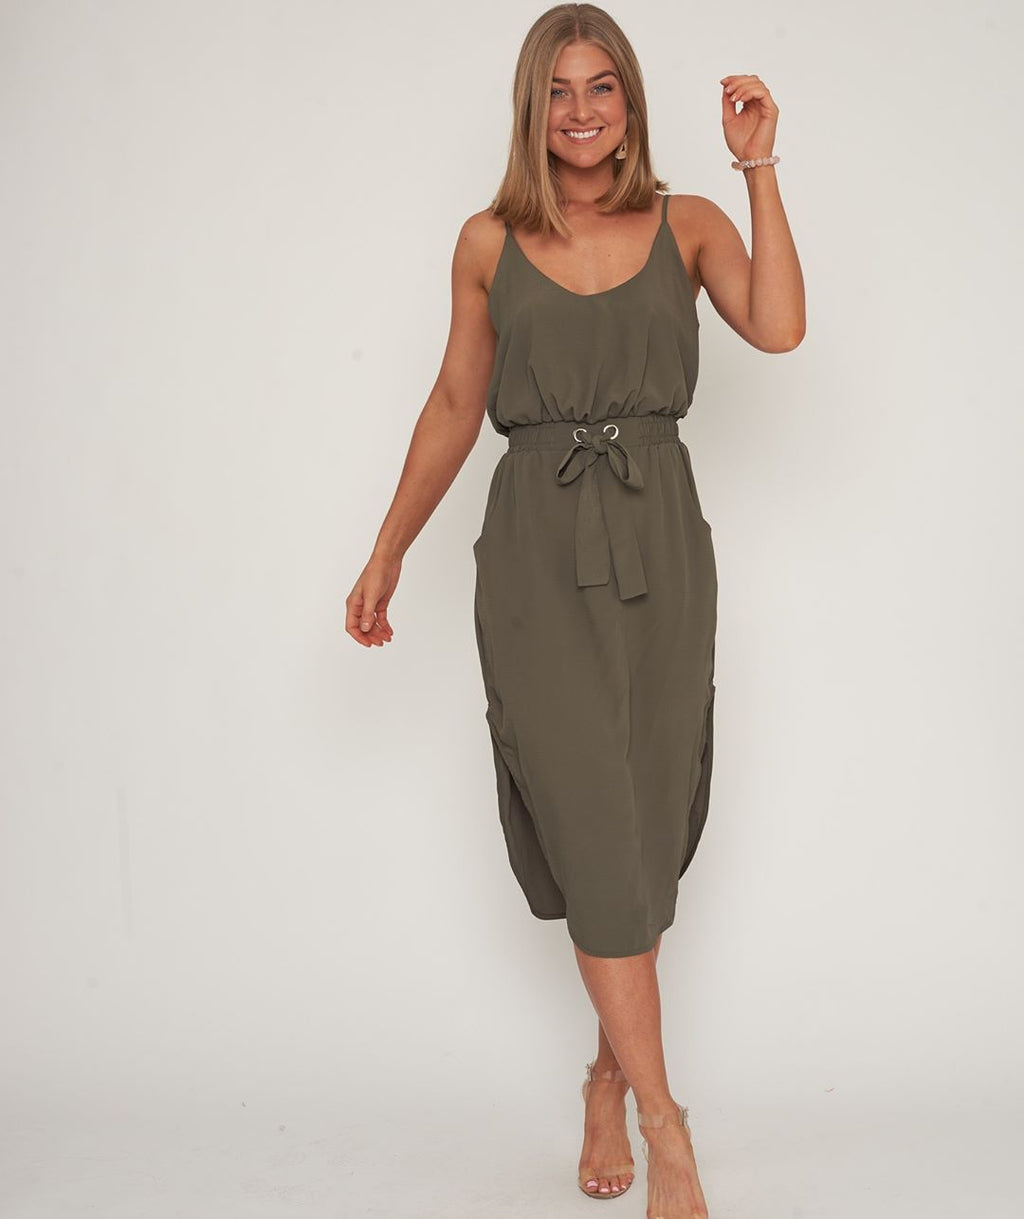 peggy minnie ebby and i khaki summer dress